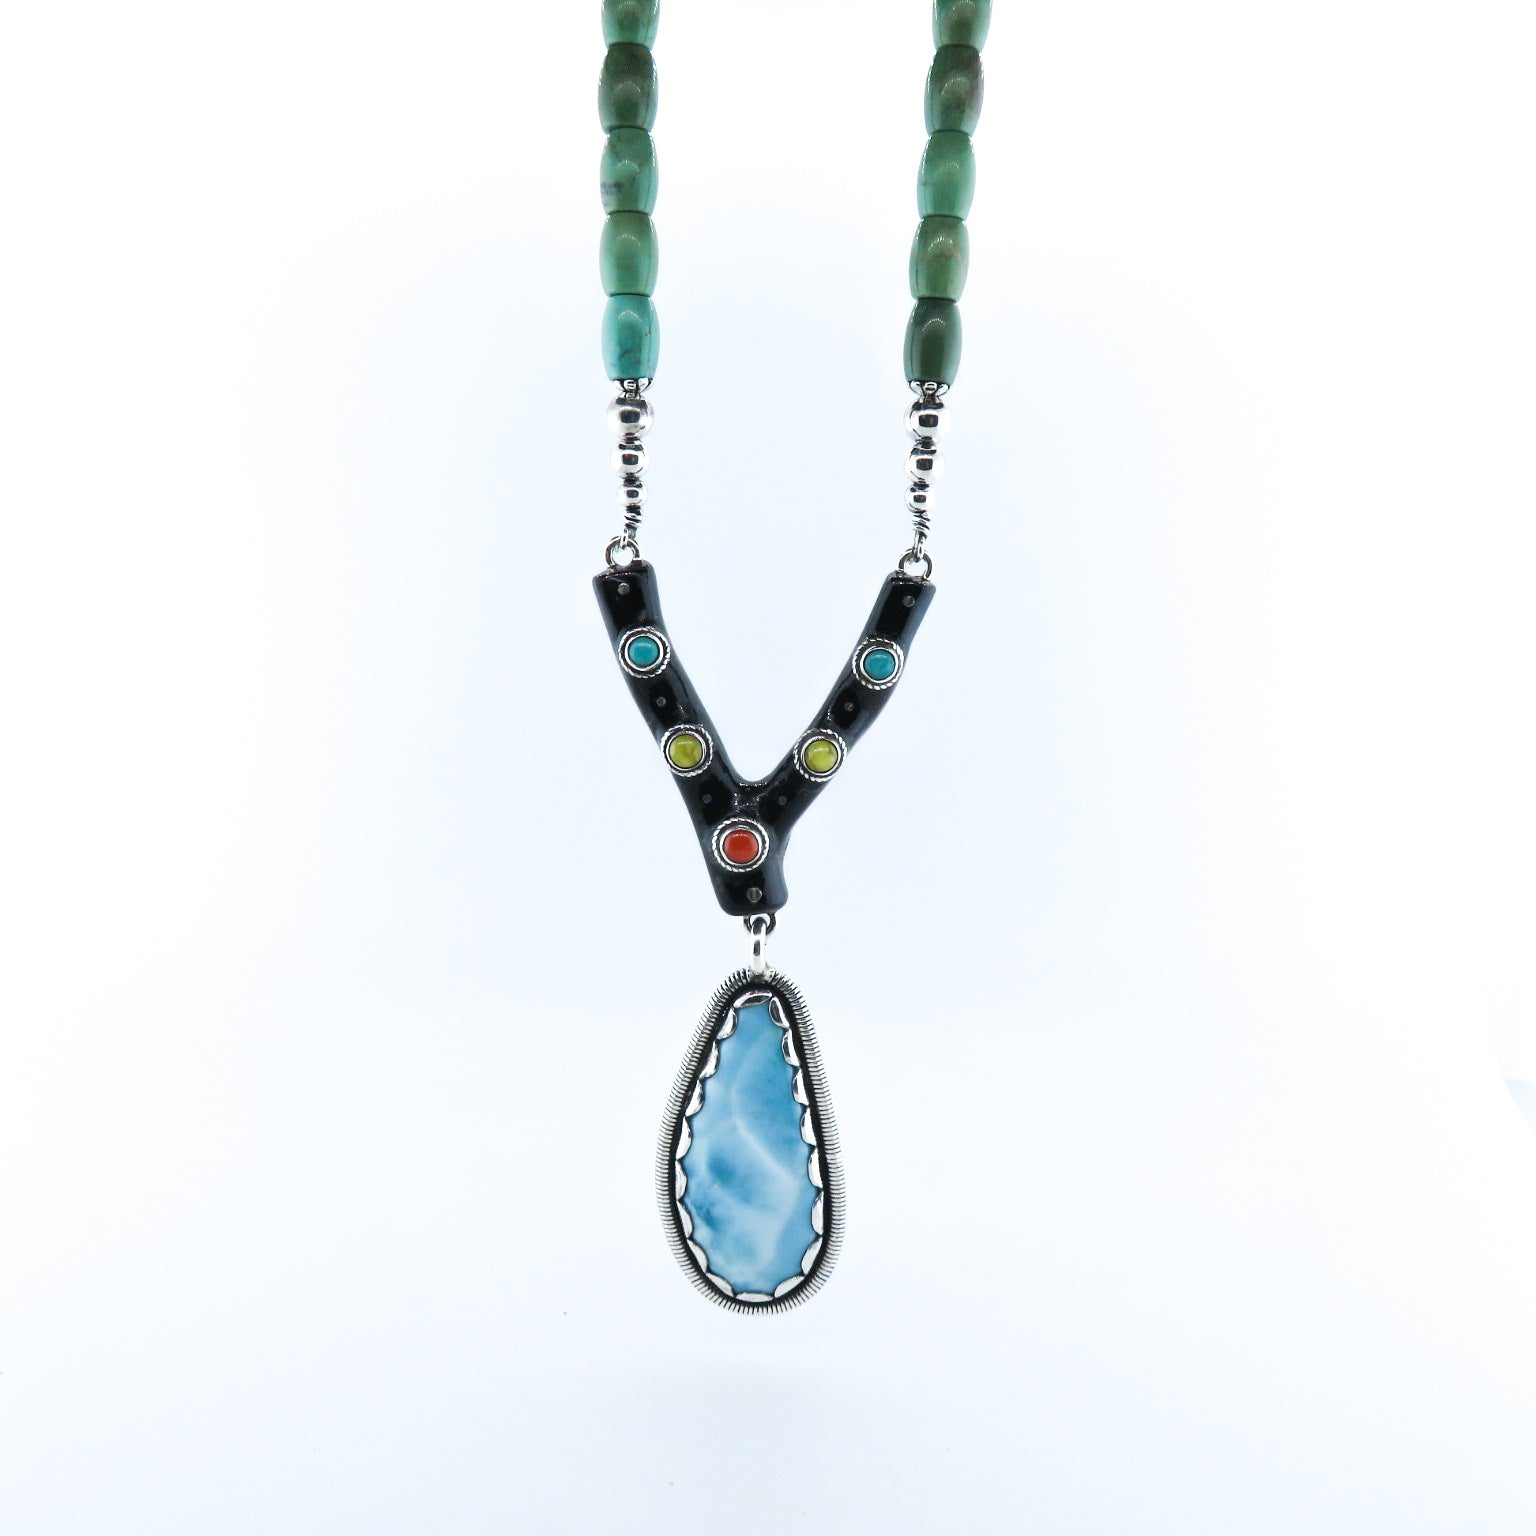 Larimar Stone Necklace with Black Coral, Turquoise, Red Coral, Lapis Lazuli, Aquamarine, Jade and Silver Beads